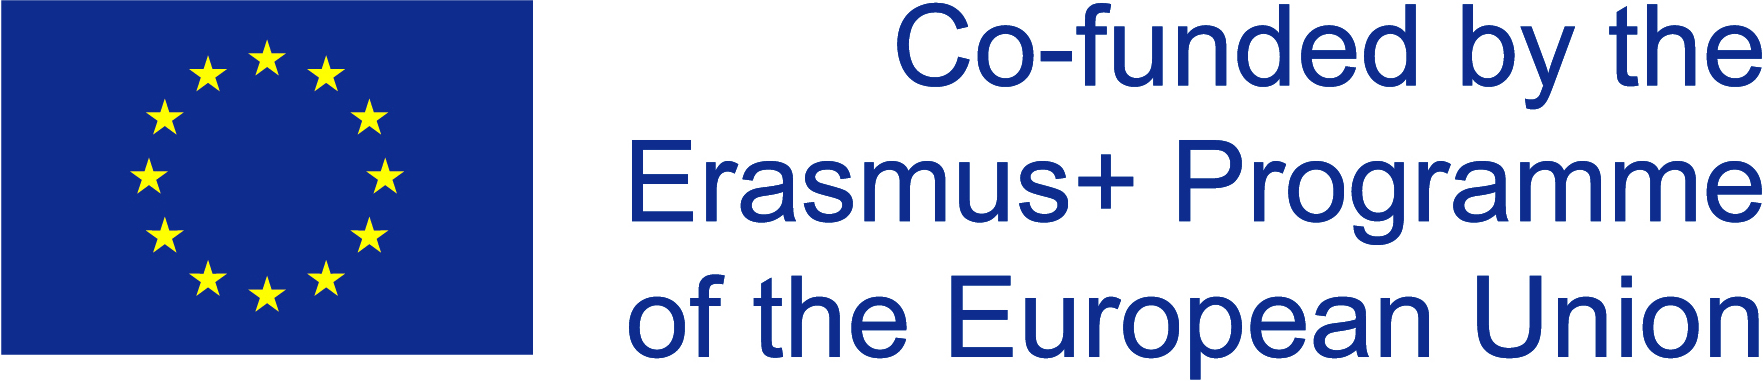 Co-funded by the Easmus+ Programme of the European Union